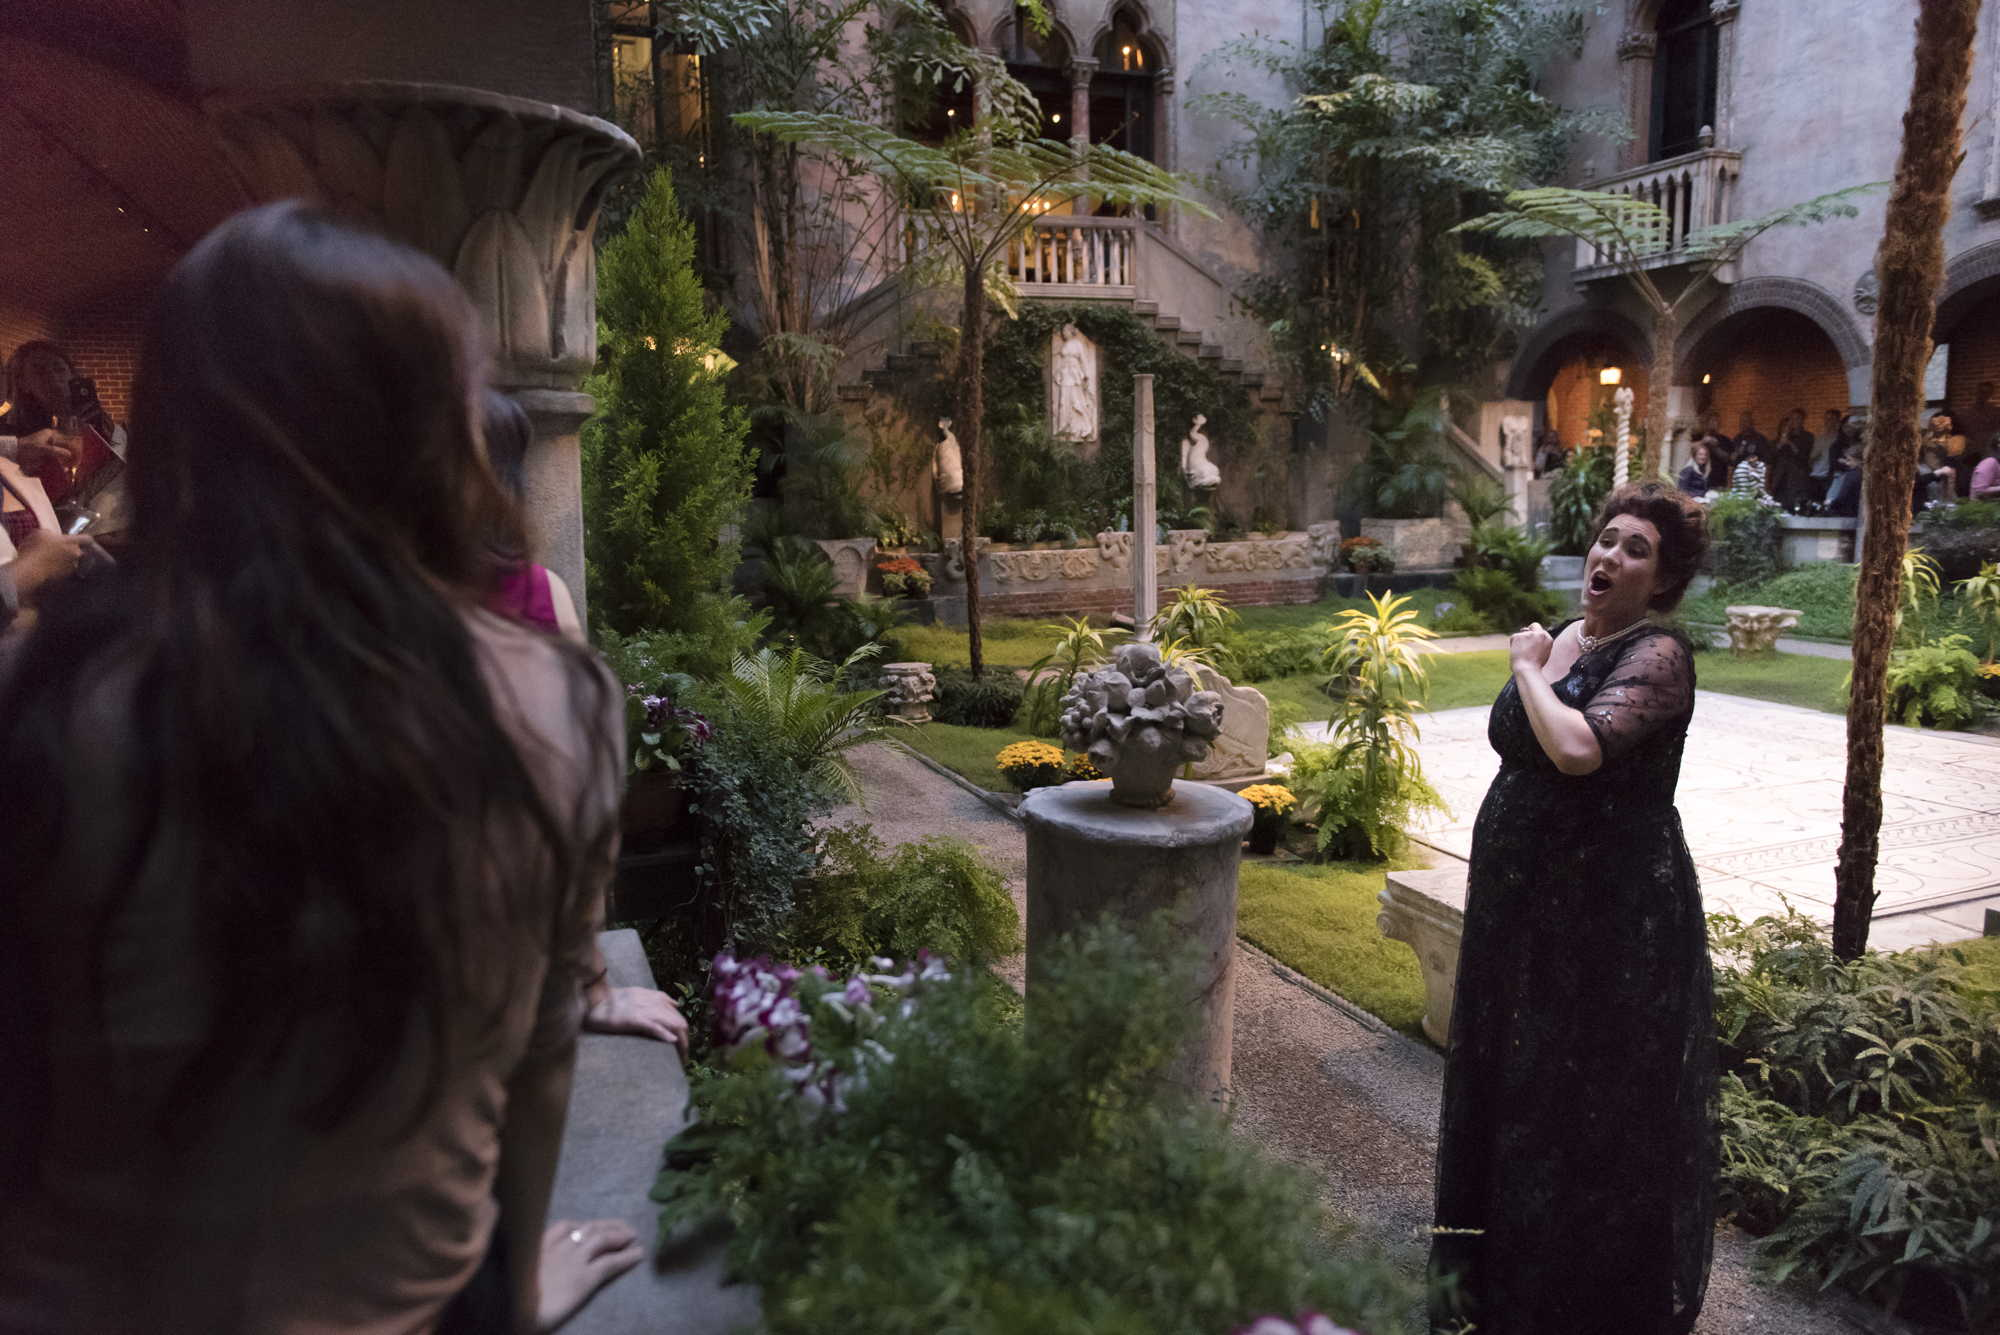 Soprano Chelsea Basler, dressed as the famous historical singer Nellie Melba, serenades the crowd at the Isabella Stewart Gardner Museum's Third Thursday series. photo by Liza Voll Photography.